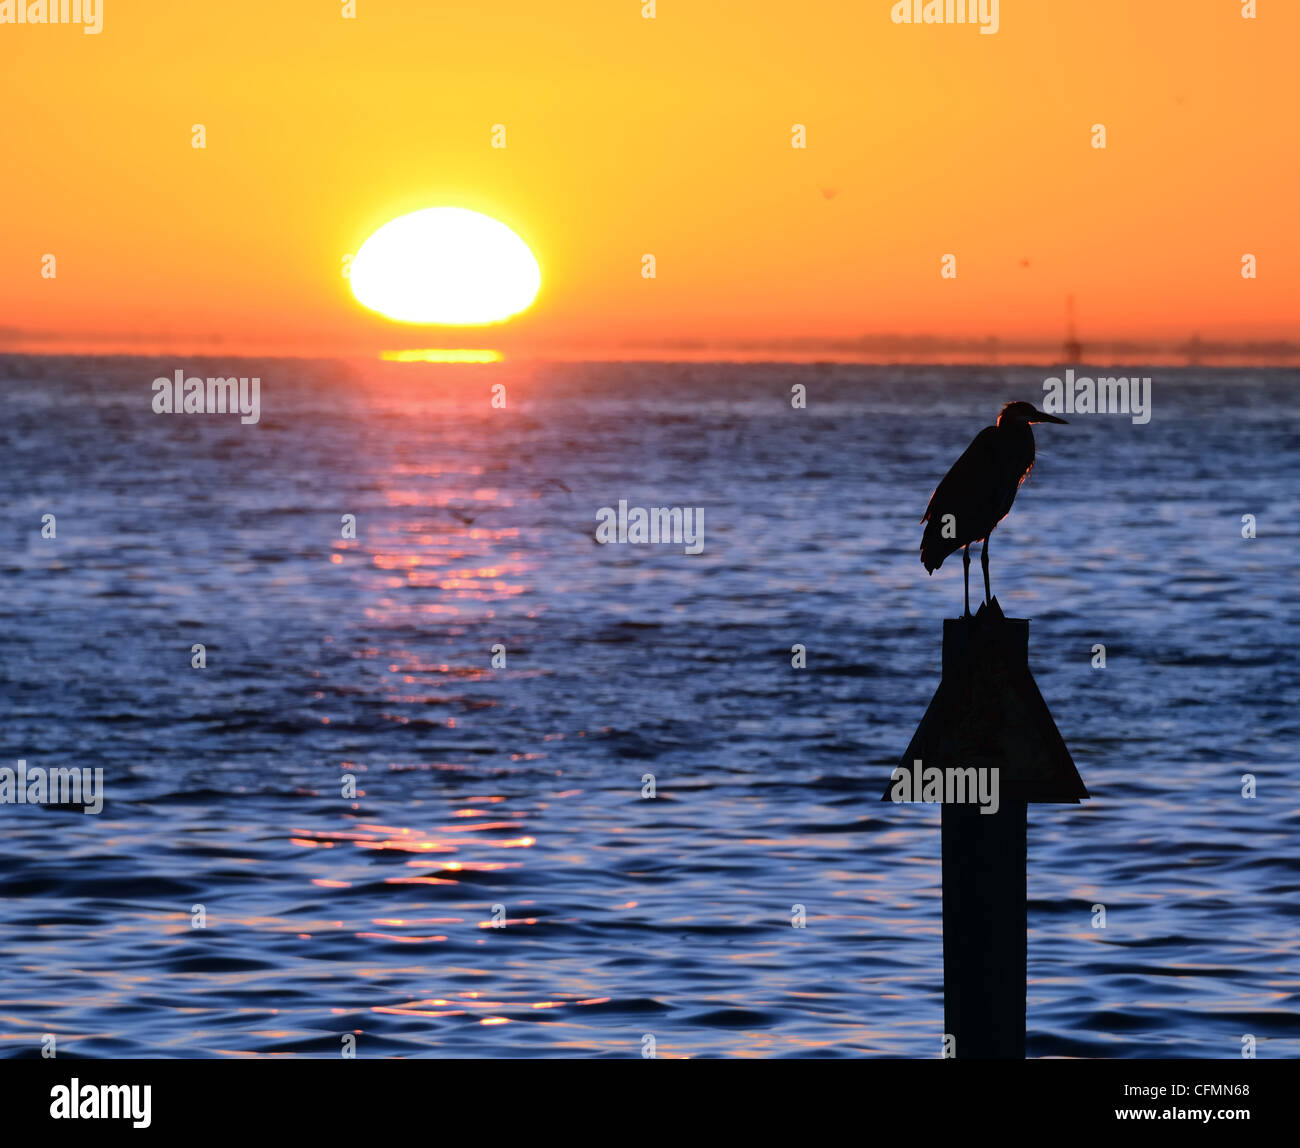 sunrise over the water with a bird on a pylon - Stock Image